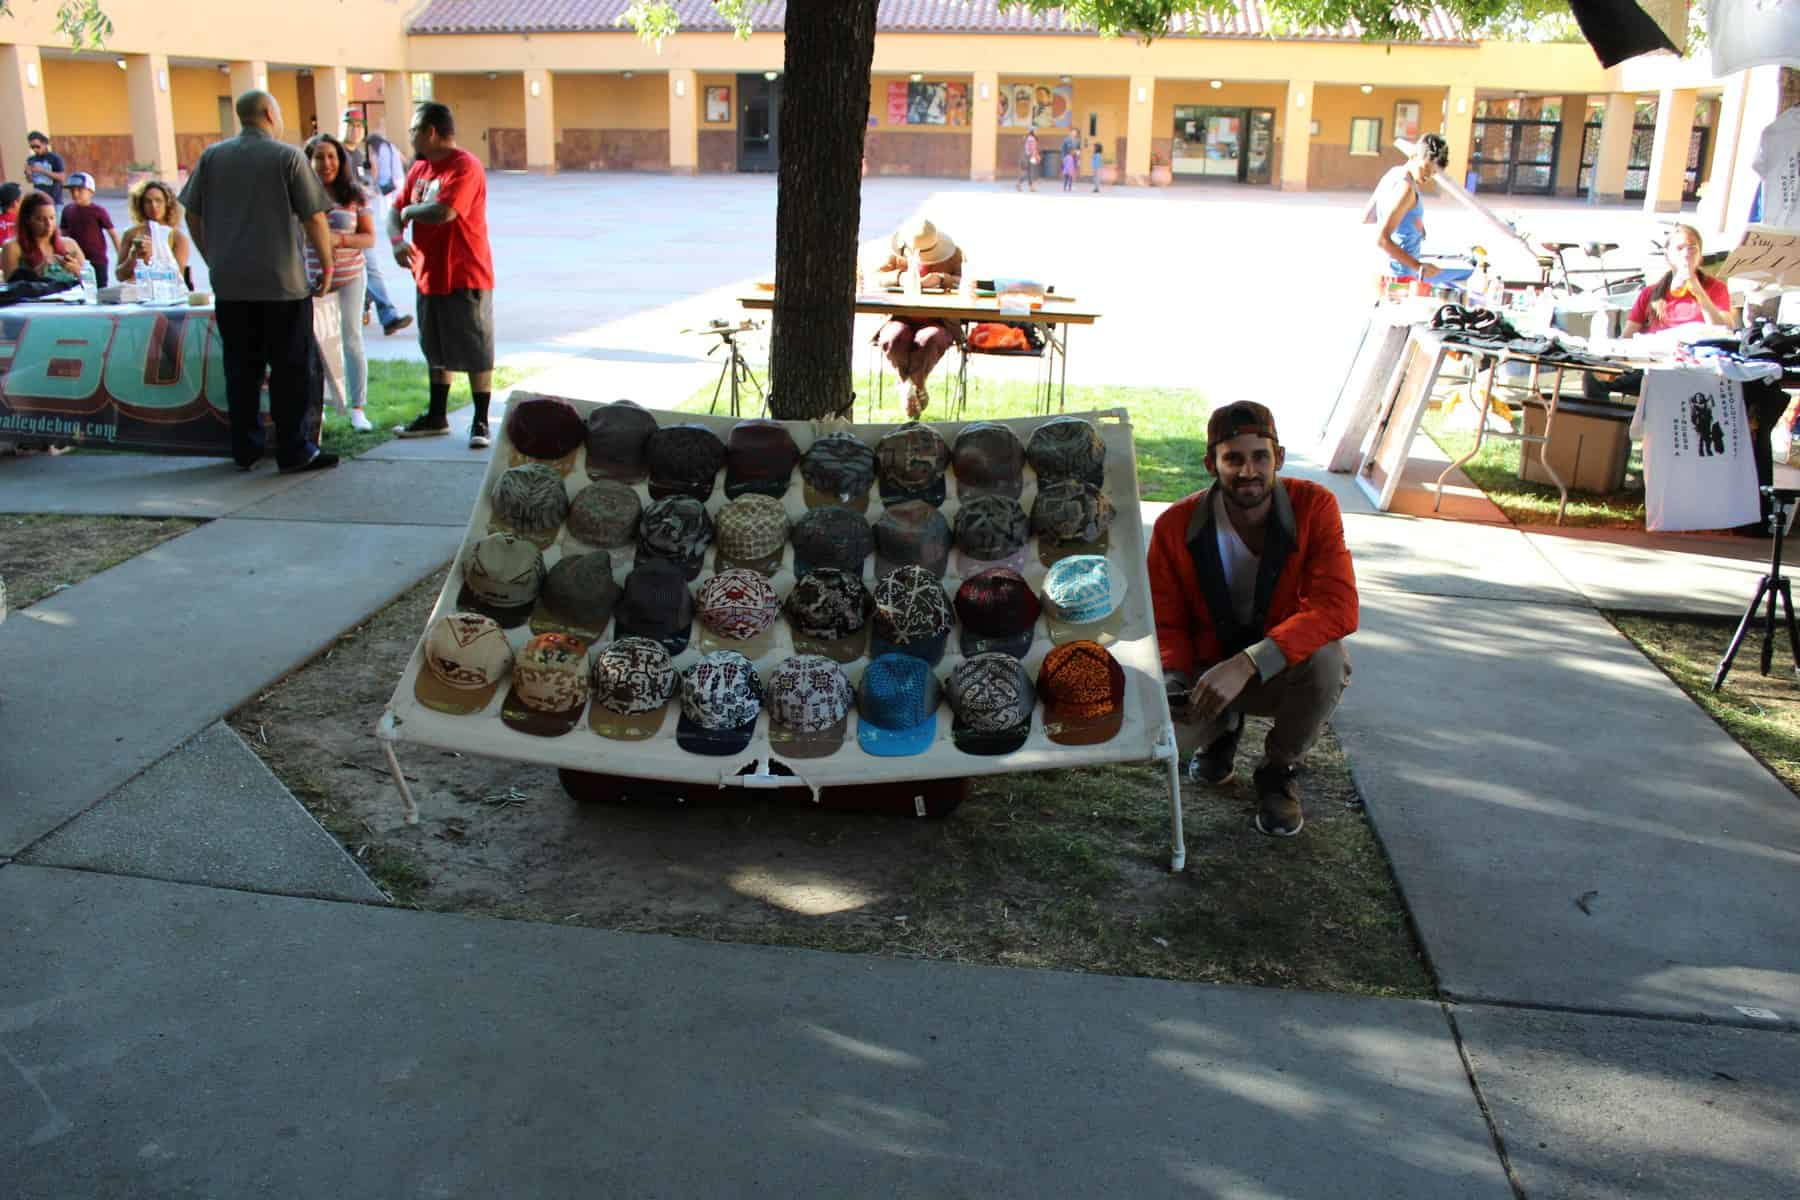 Young Man Selling Hats At Vendor Booth